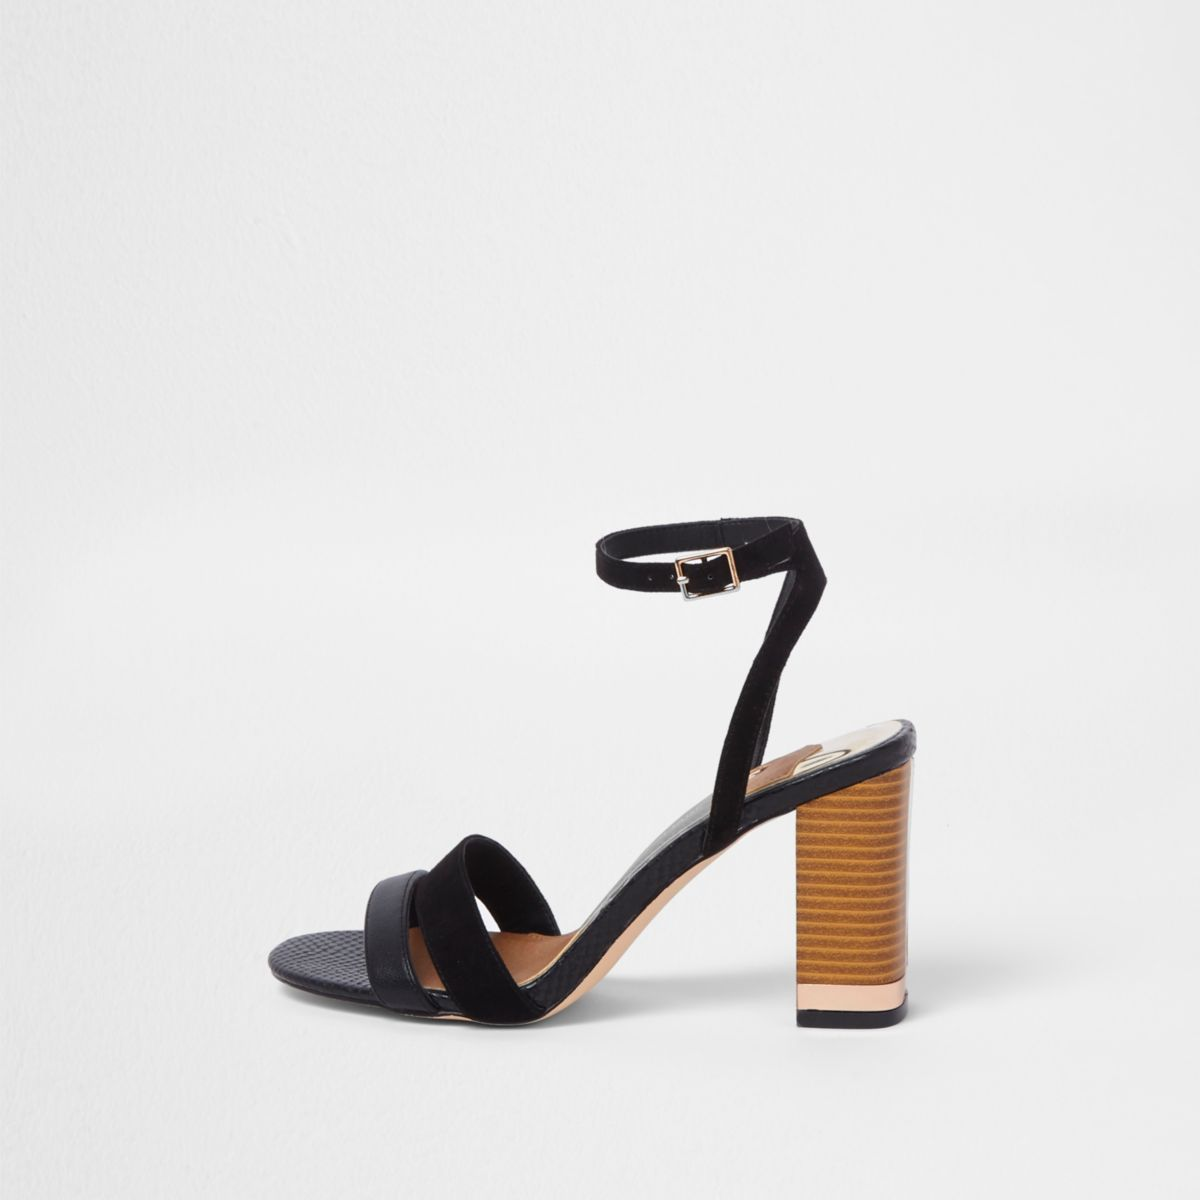 Black barely there block heel sandals